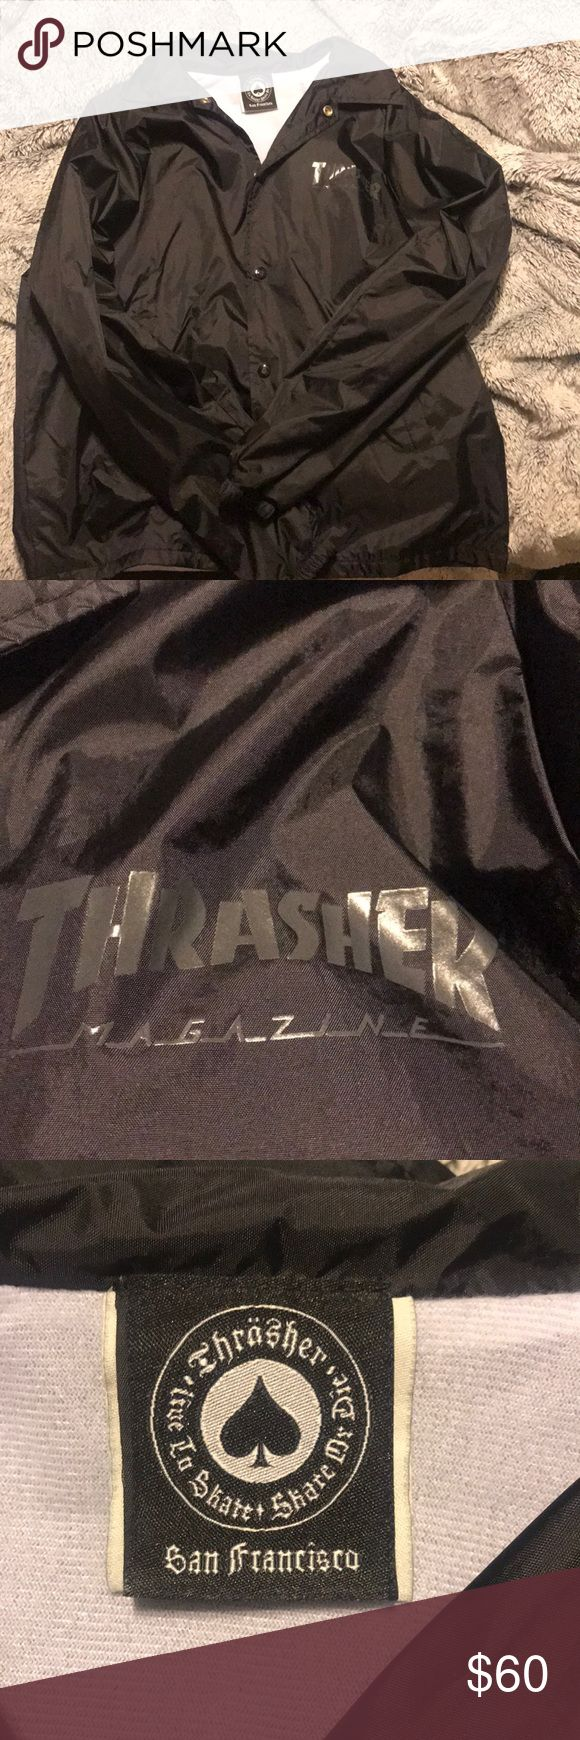 "Thrasher skate and destroy snap up windbreaker Thrasher unisex snap up ""skate and destroy"" windbreaker, very trendy and willing to work with price Jackets & Coats Puffers"